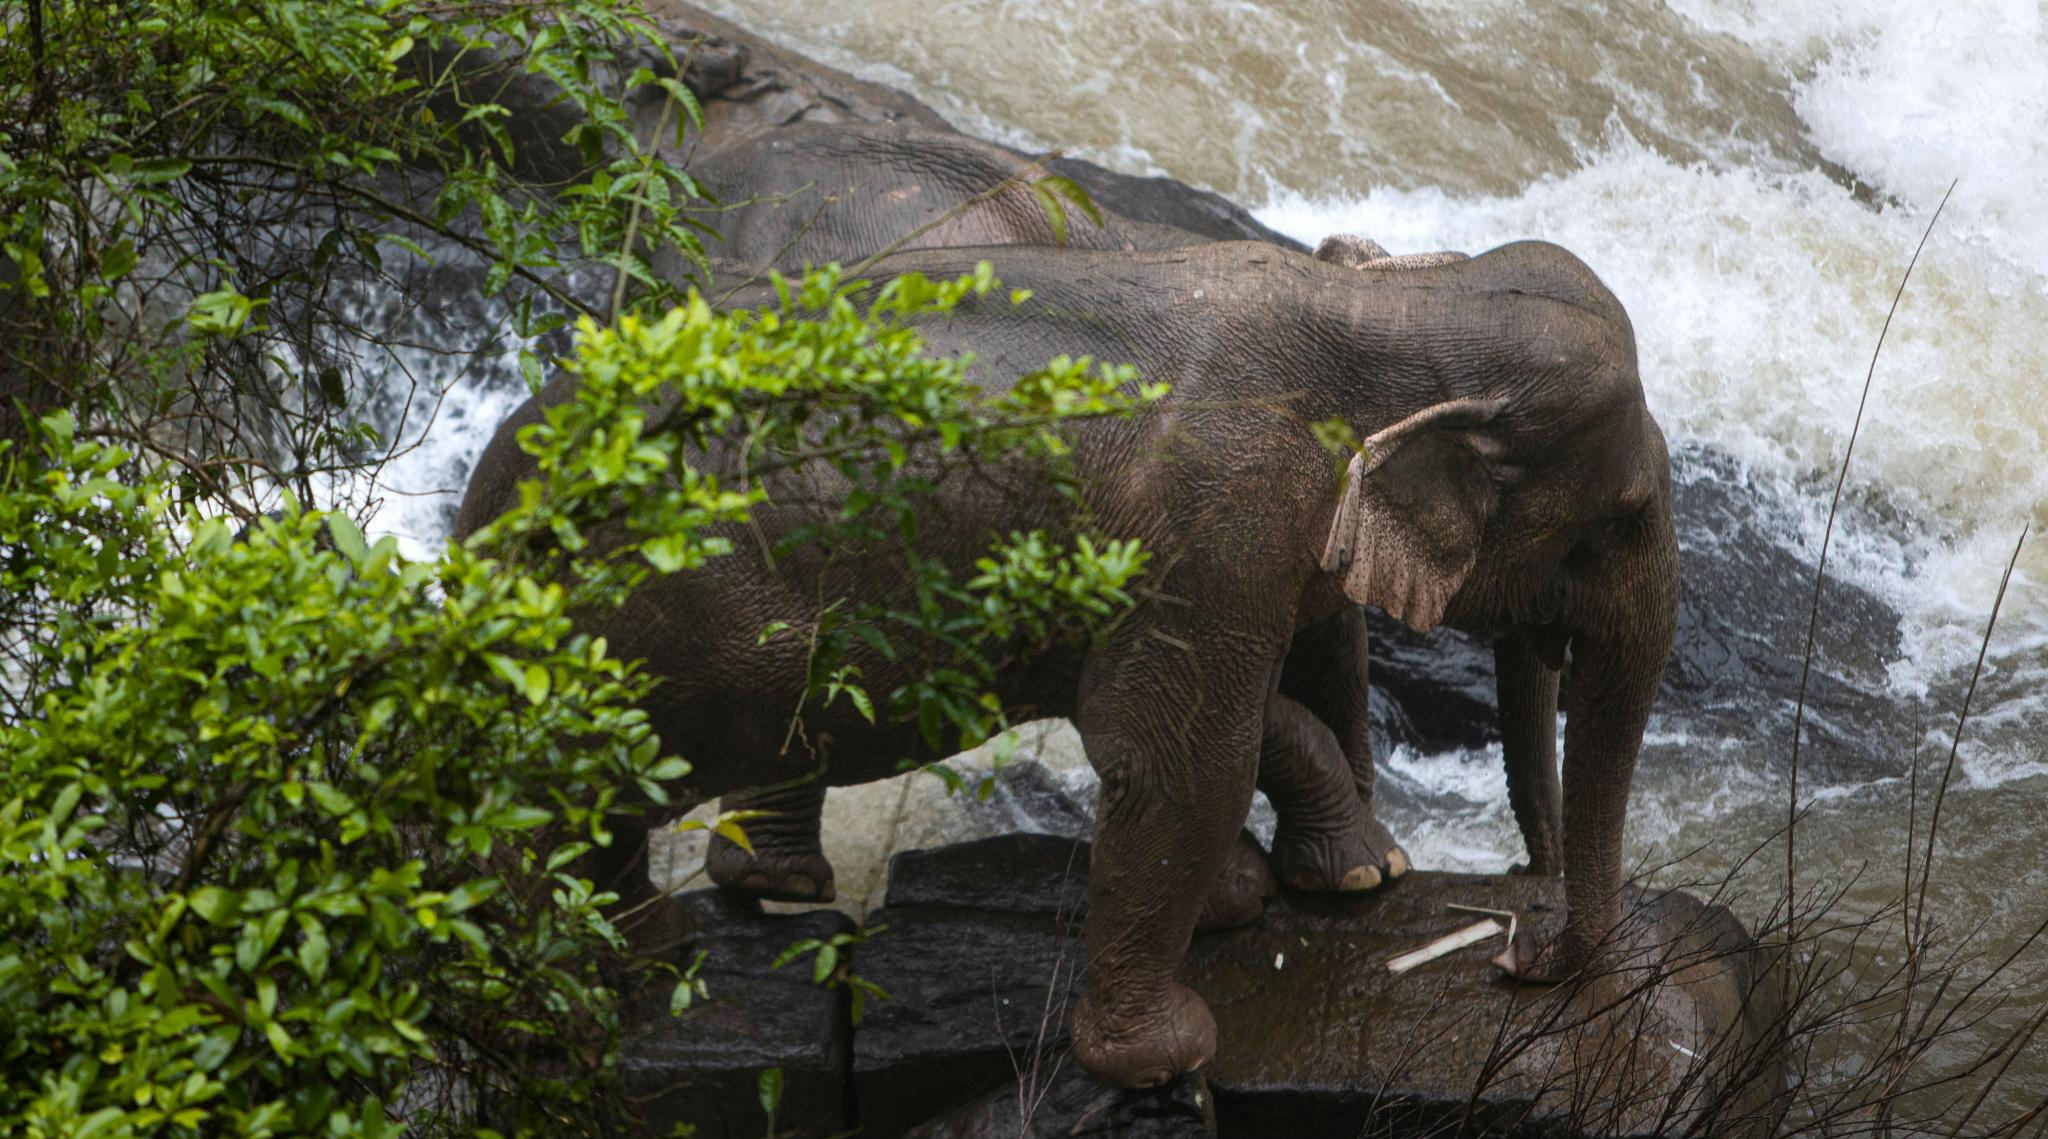 Bangkok: Six Wild Elephants Drown After Slipping Off Waterfall in Thailand Park